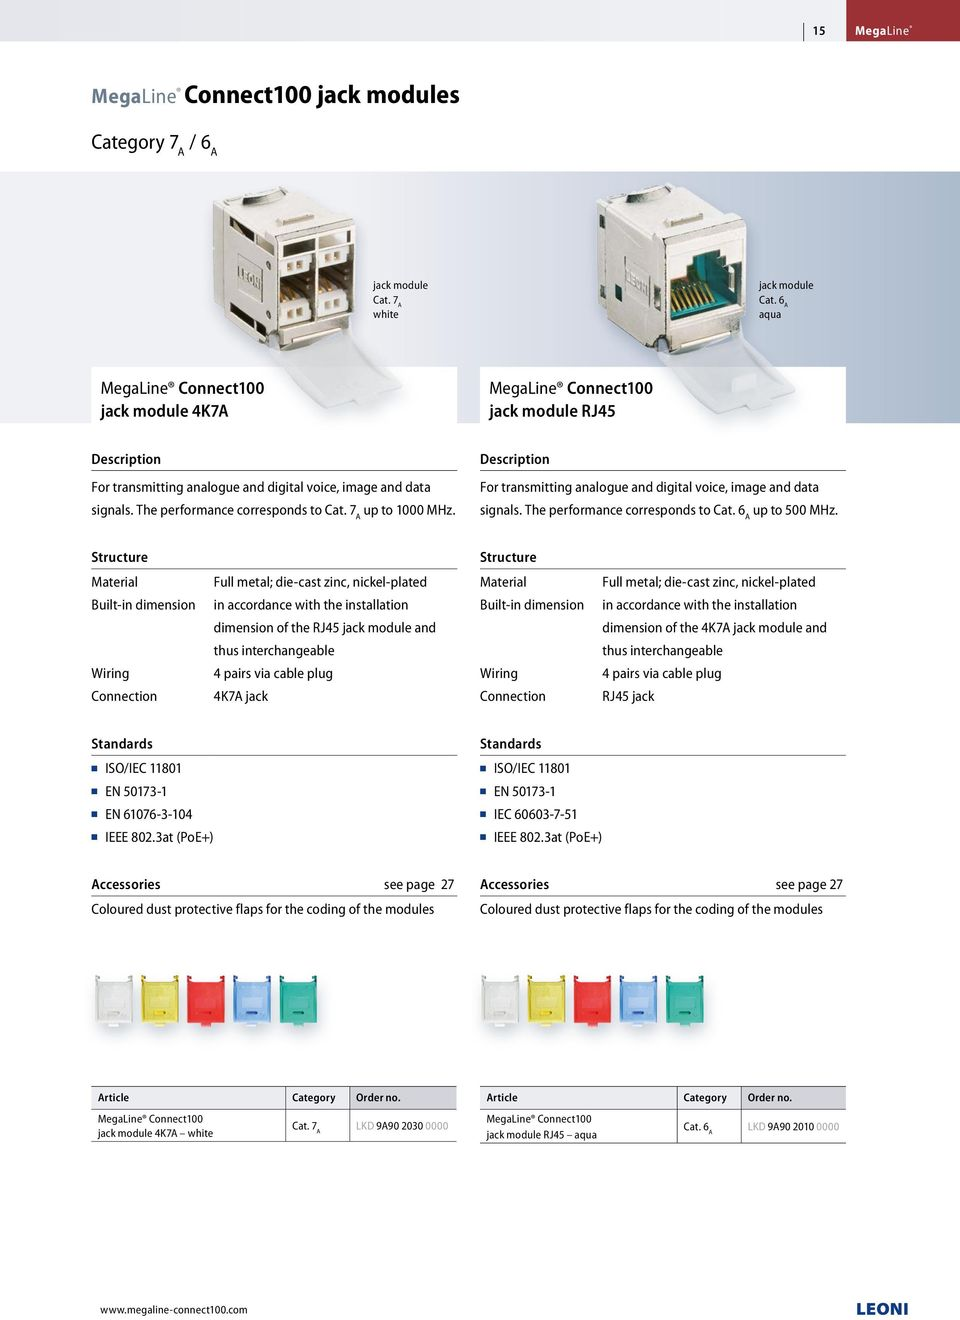 Megaline Connect100 The Migration Capable Connection Technology Pdf Voice Jack Wiring For Transmitting Analogue And Digital Image Data Signals Performance Corresponds To